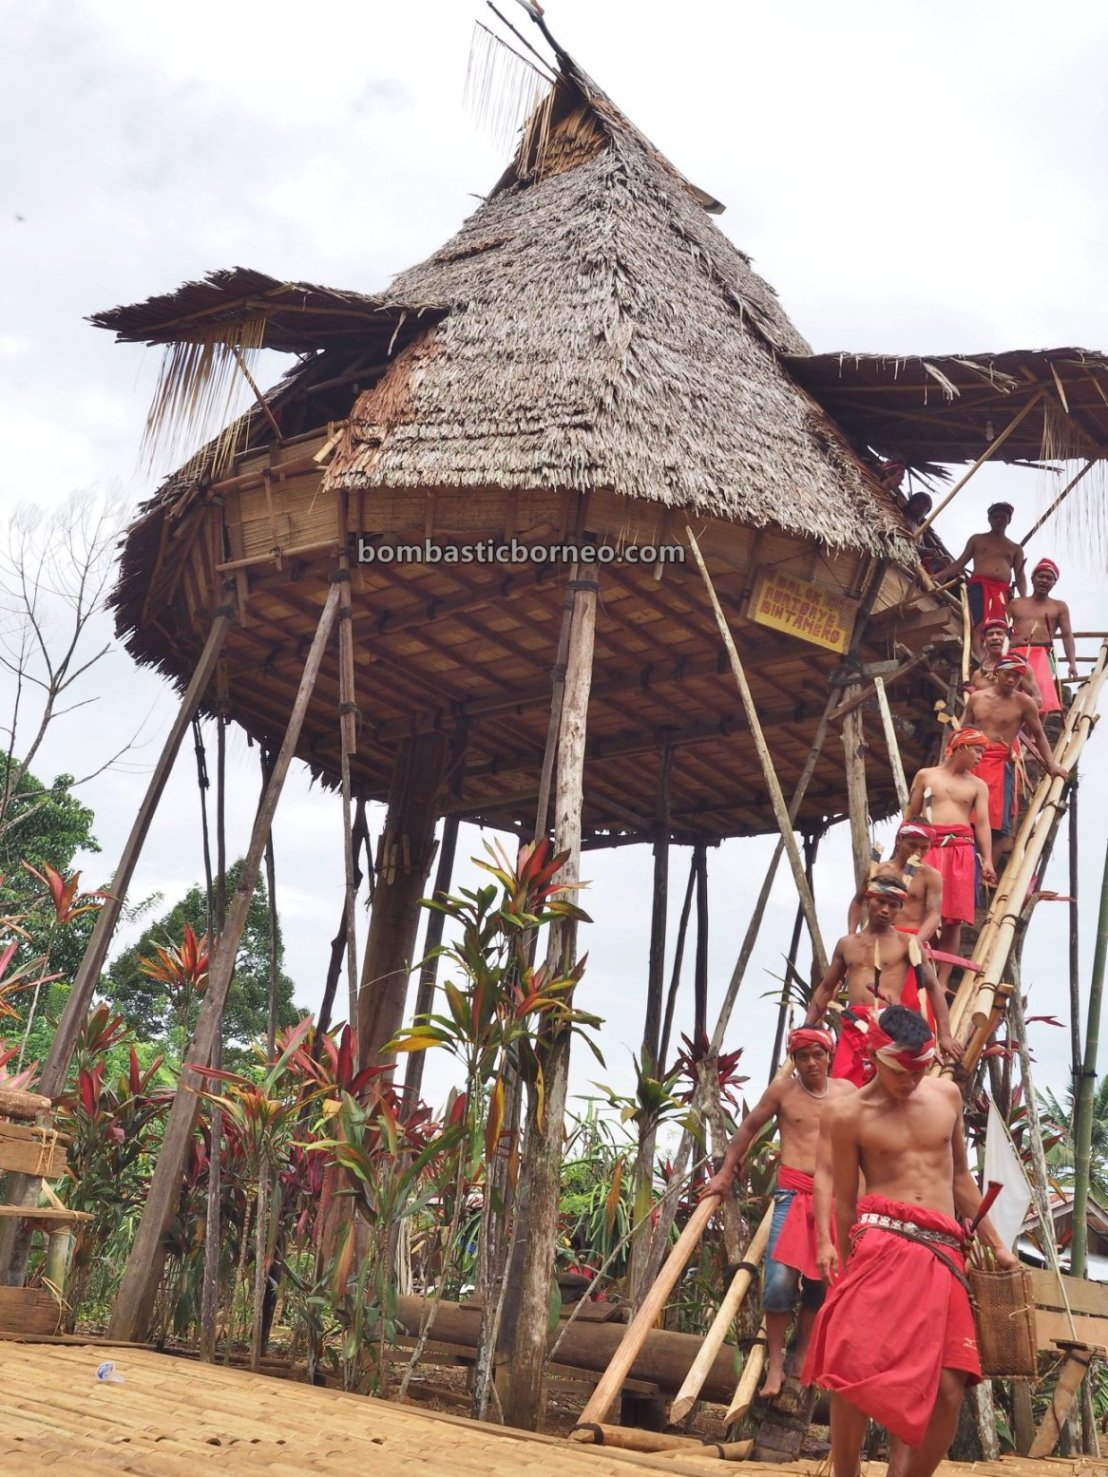 Gawai Nyobeng, authentic, destination, culture, Bengkayang, Desa Sahan, Dayak Bidayuh, tribal, skull house, tourist attraction, travel guide, trans border, Borneo, 西加里曼丹比达友, 印尼孟加映部落